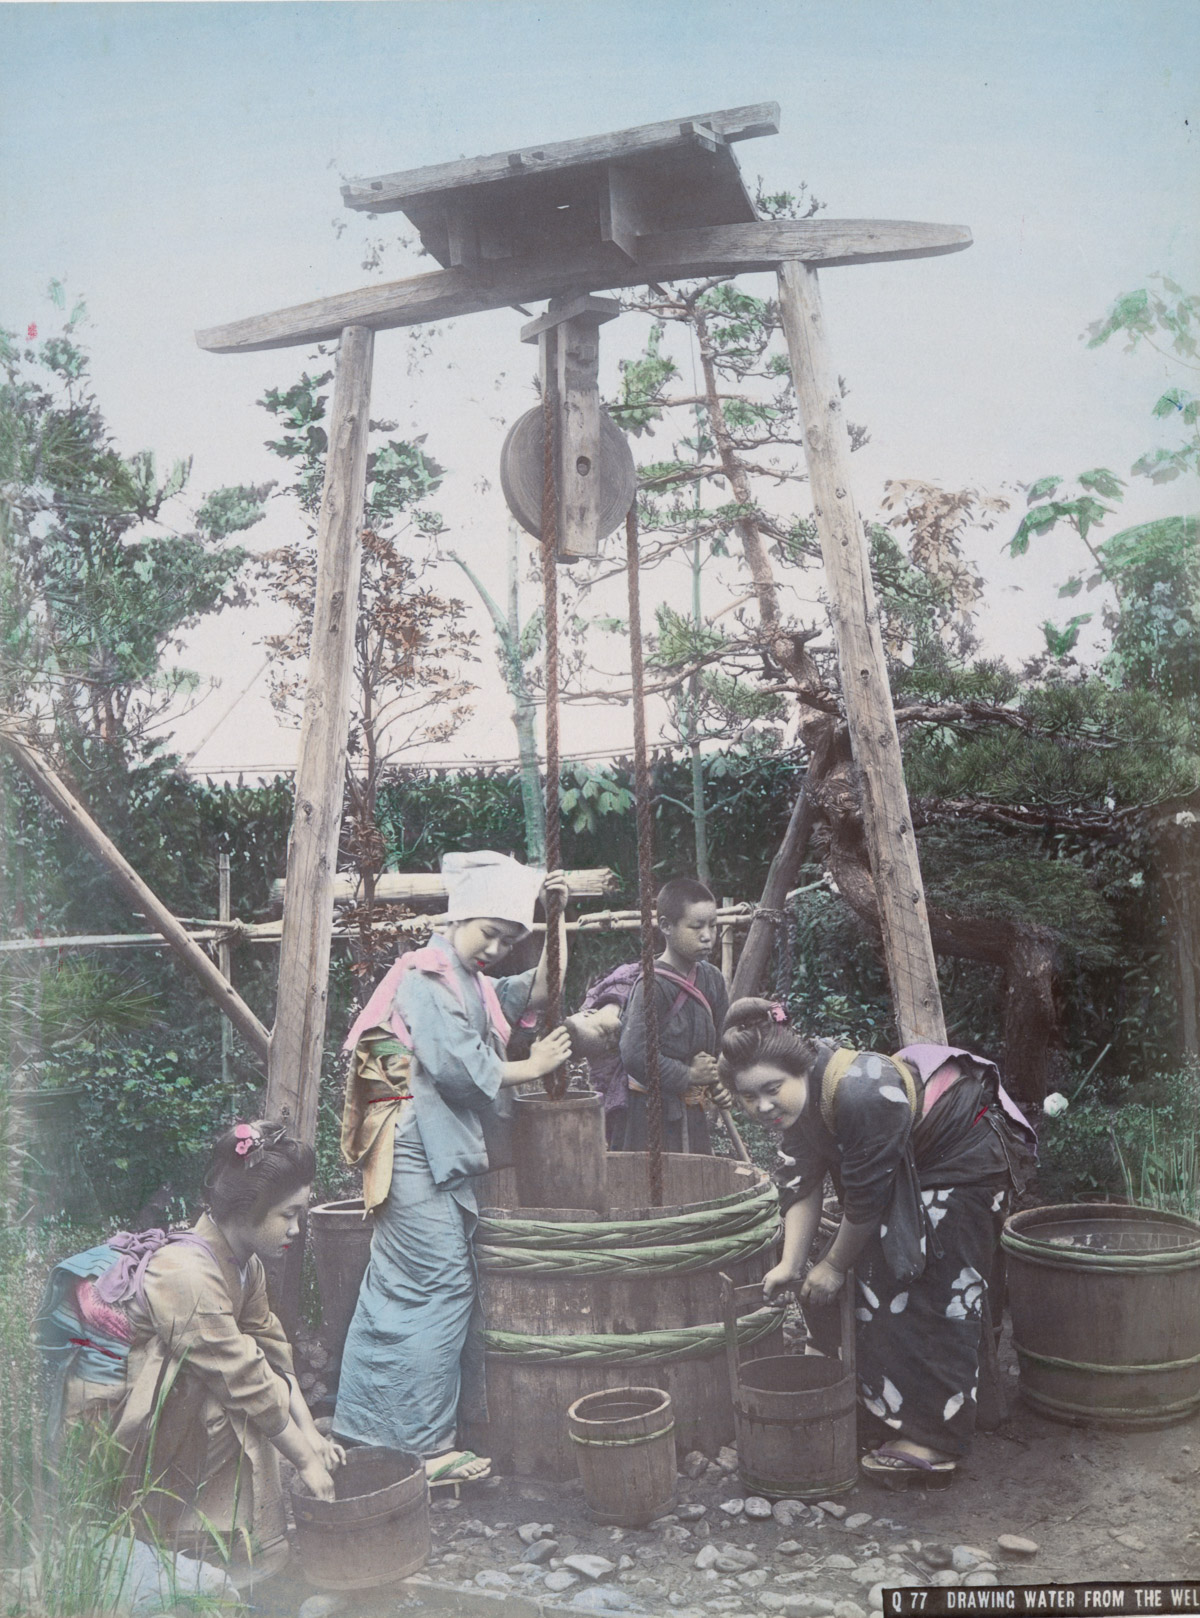 Drawing Water from the Well - Image by New York Public Library